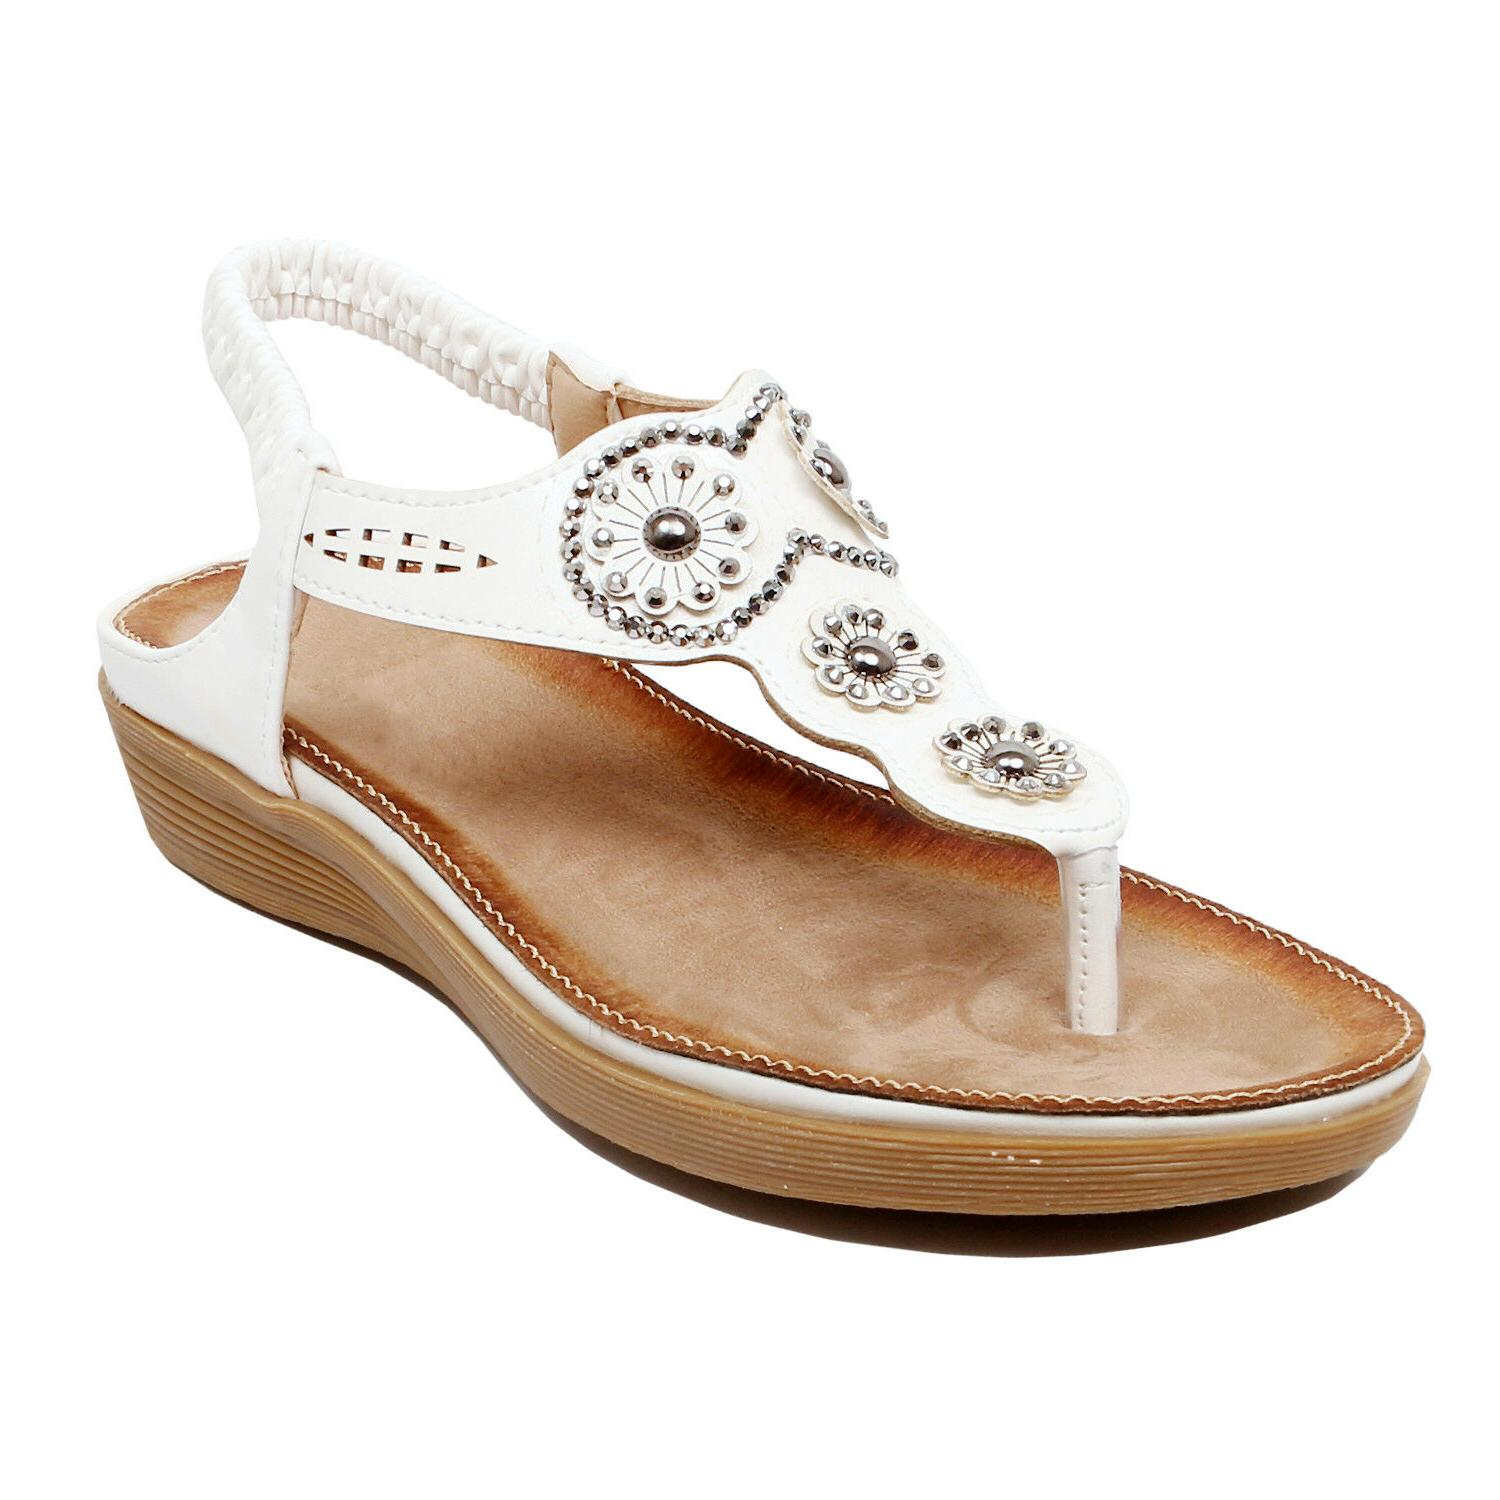 Womens Jeweled Comfortable Summer Easy On Flat Sandal